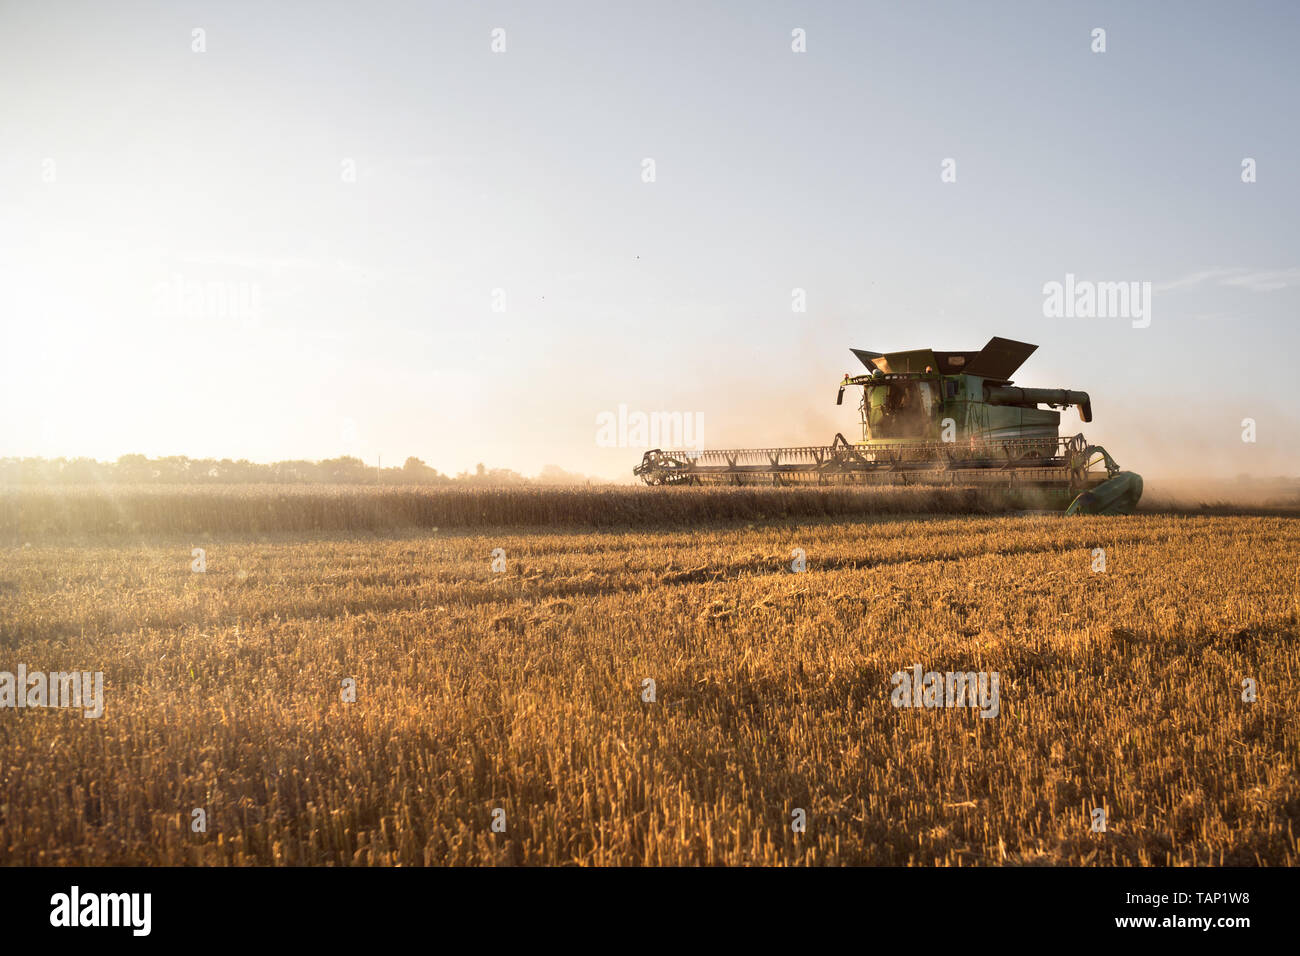 Harvested wheat field with a working combine harvester at sunset Stock Photo